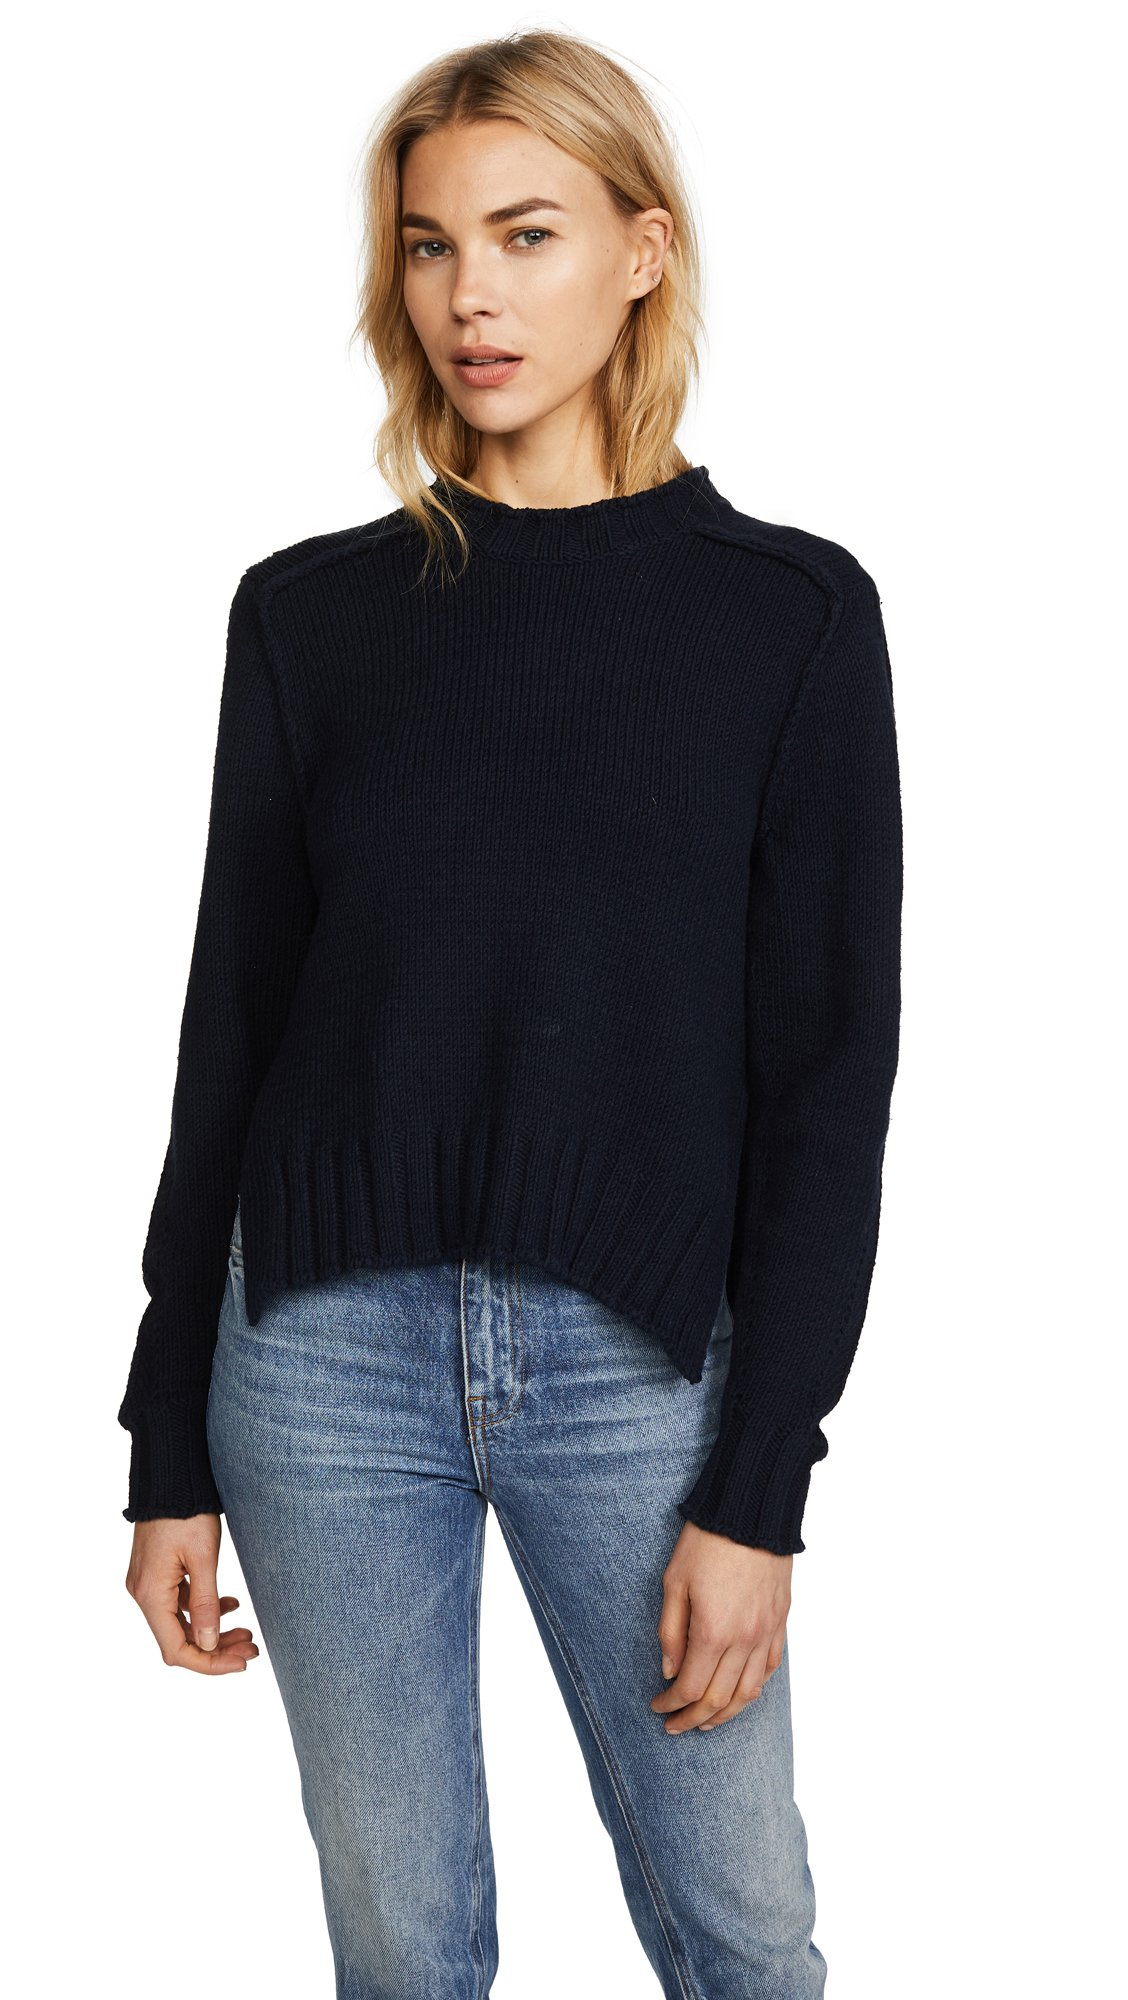 360 SWEATER Women's Kendra Sweater, Midnight, X-Small by 360SWEATER (Image #1)